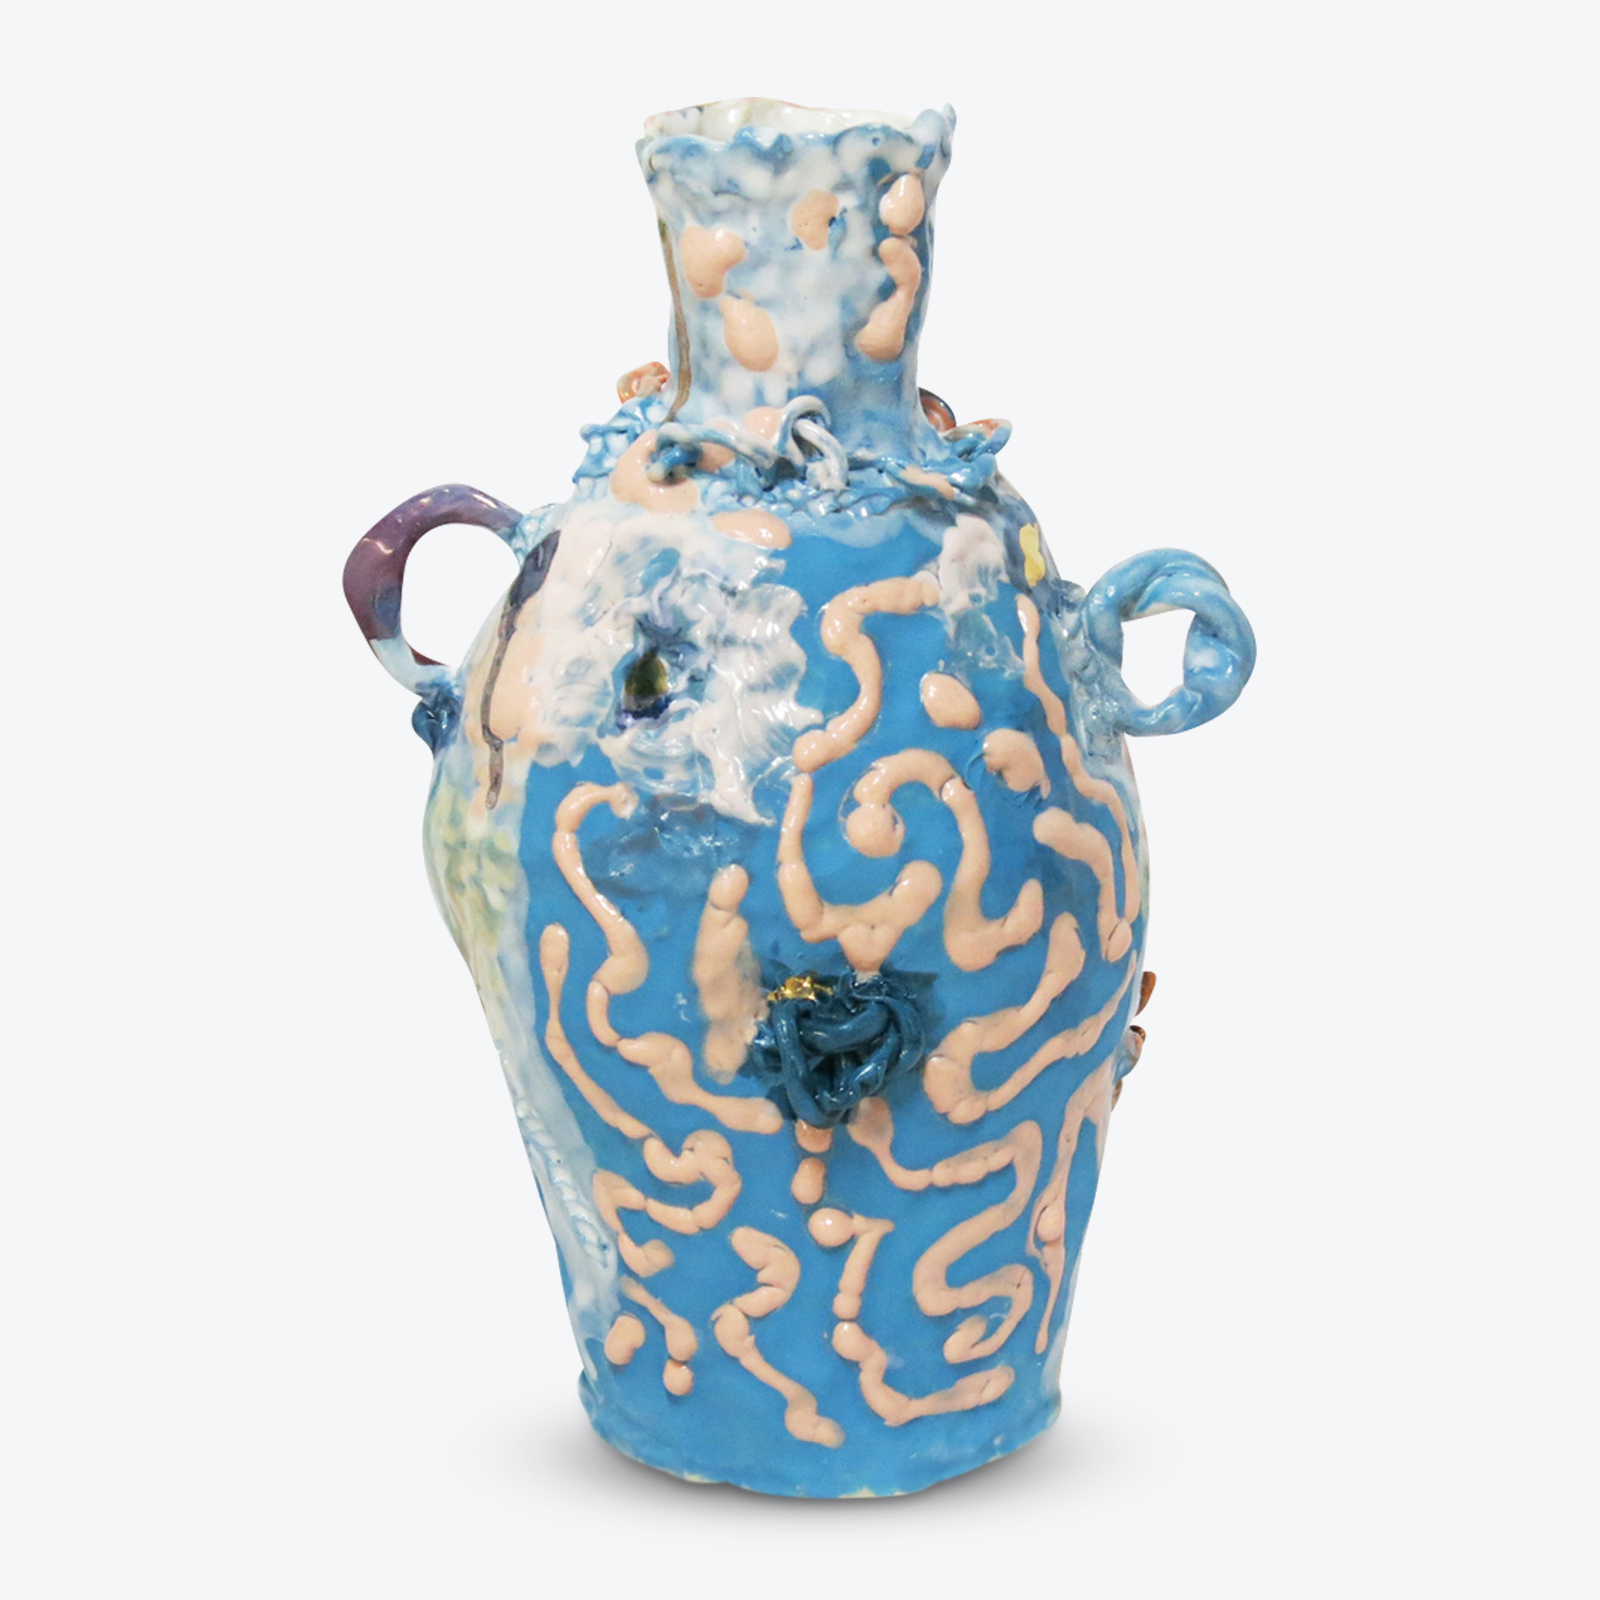 Harlequin Vessel In Glazed Stoneware With Lustre By Tessy King 01